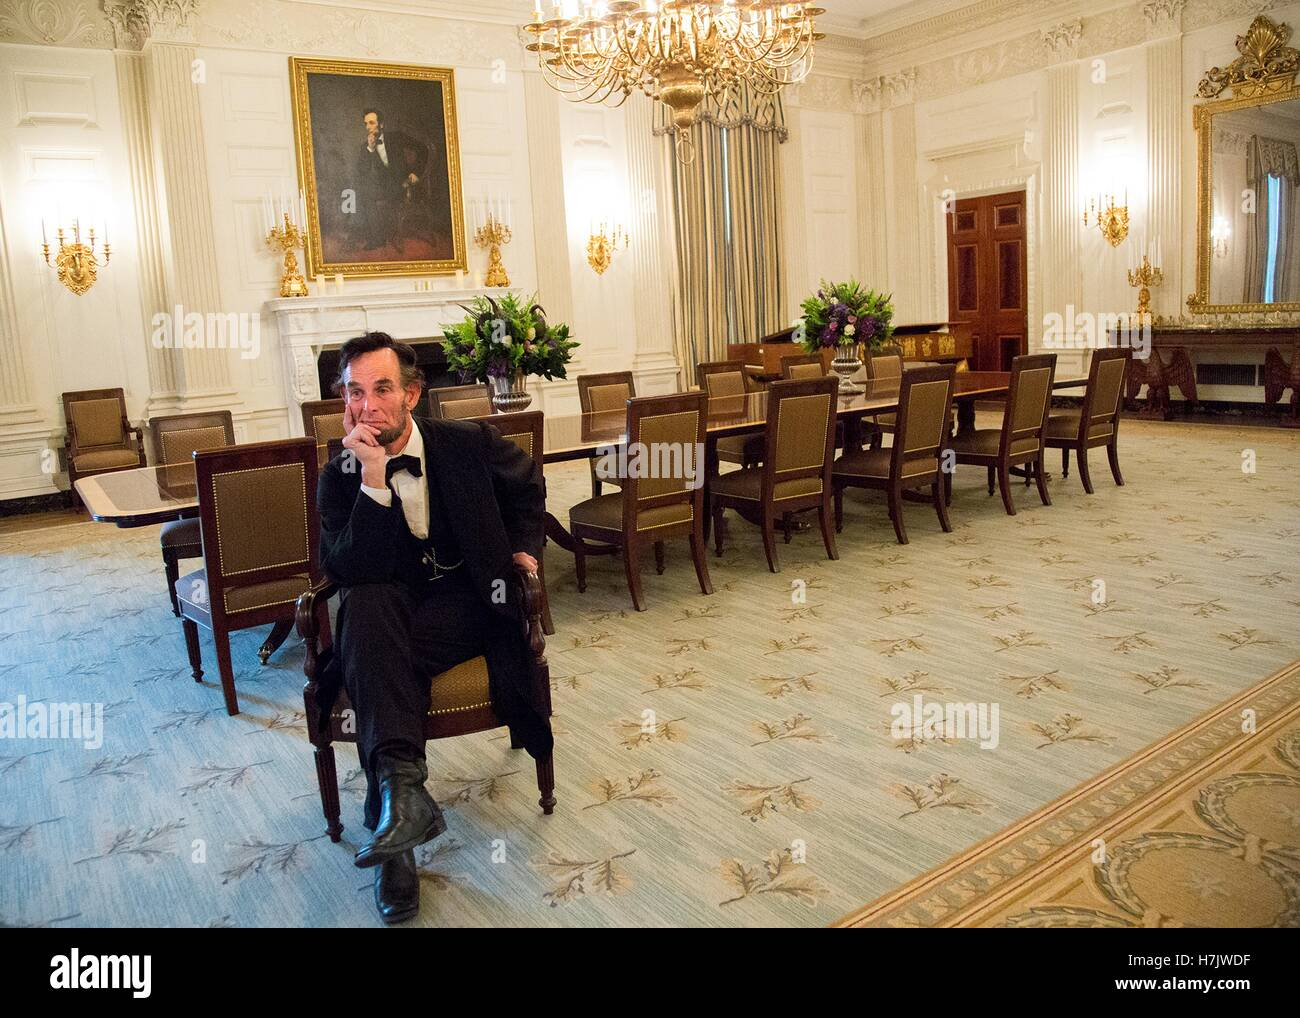 President Abraham Lincoln re-enactor Fritz Klein poses by the famous Lincoln portrait in the White House State Dining - Stock Image